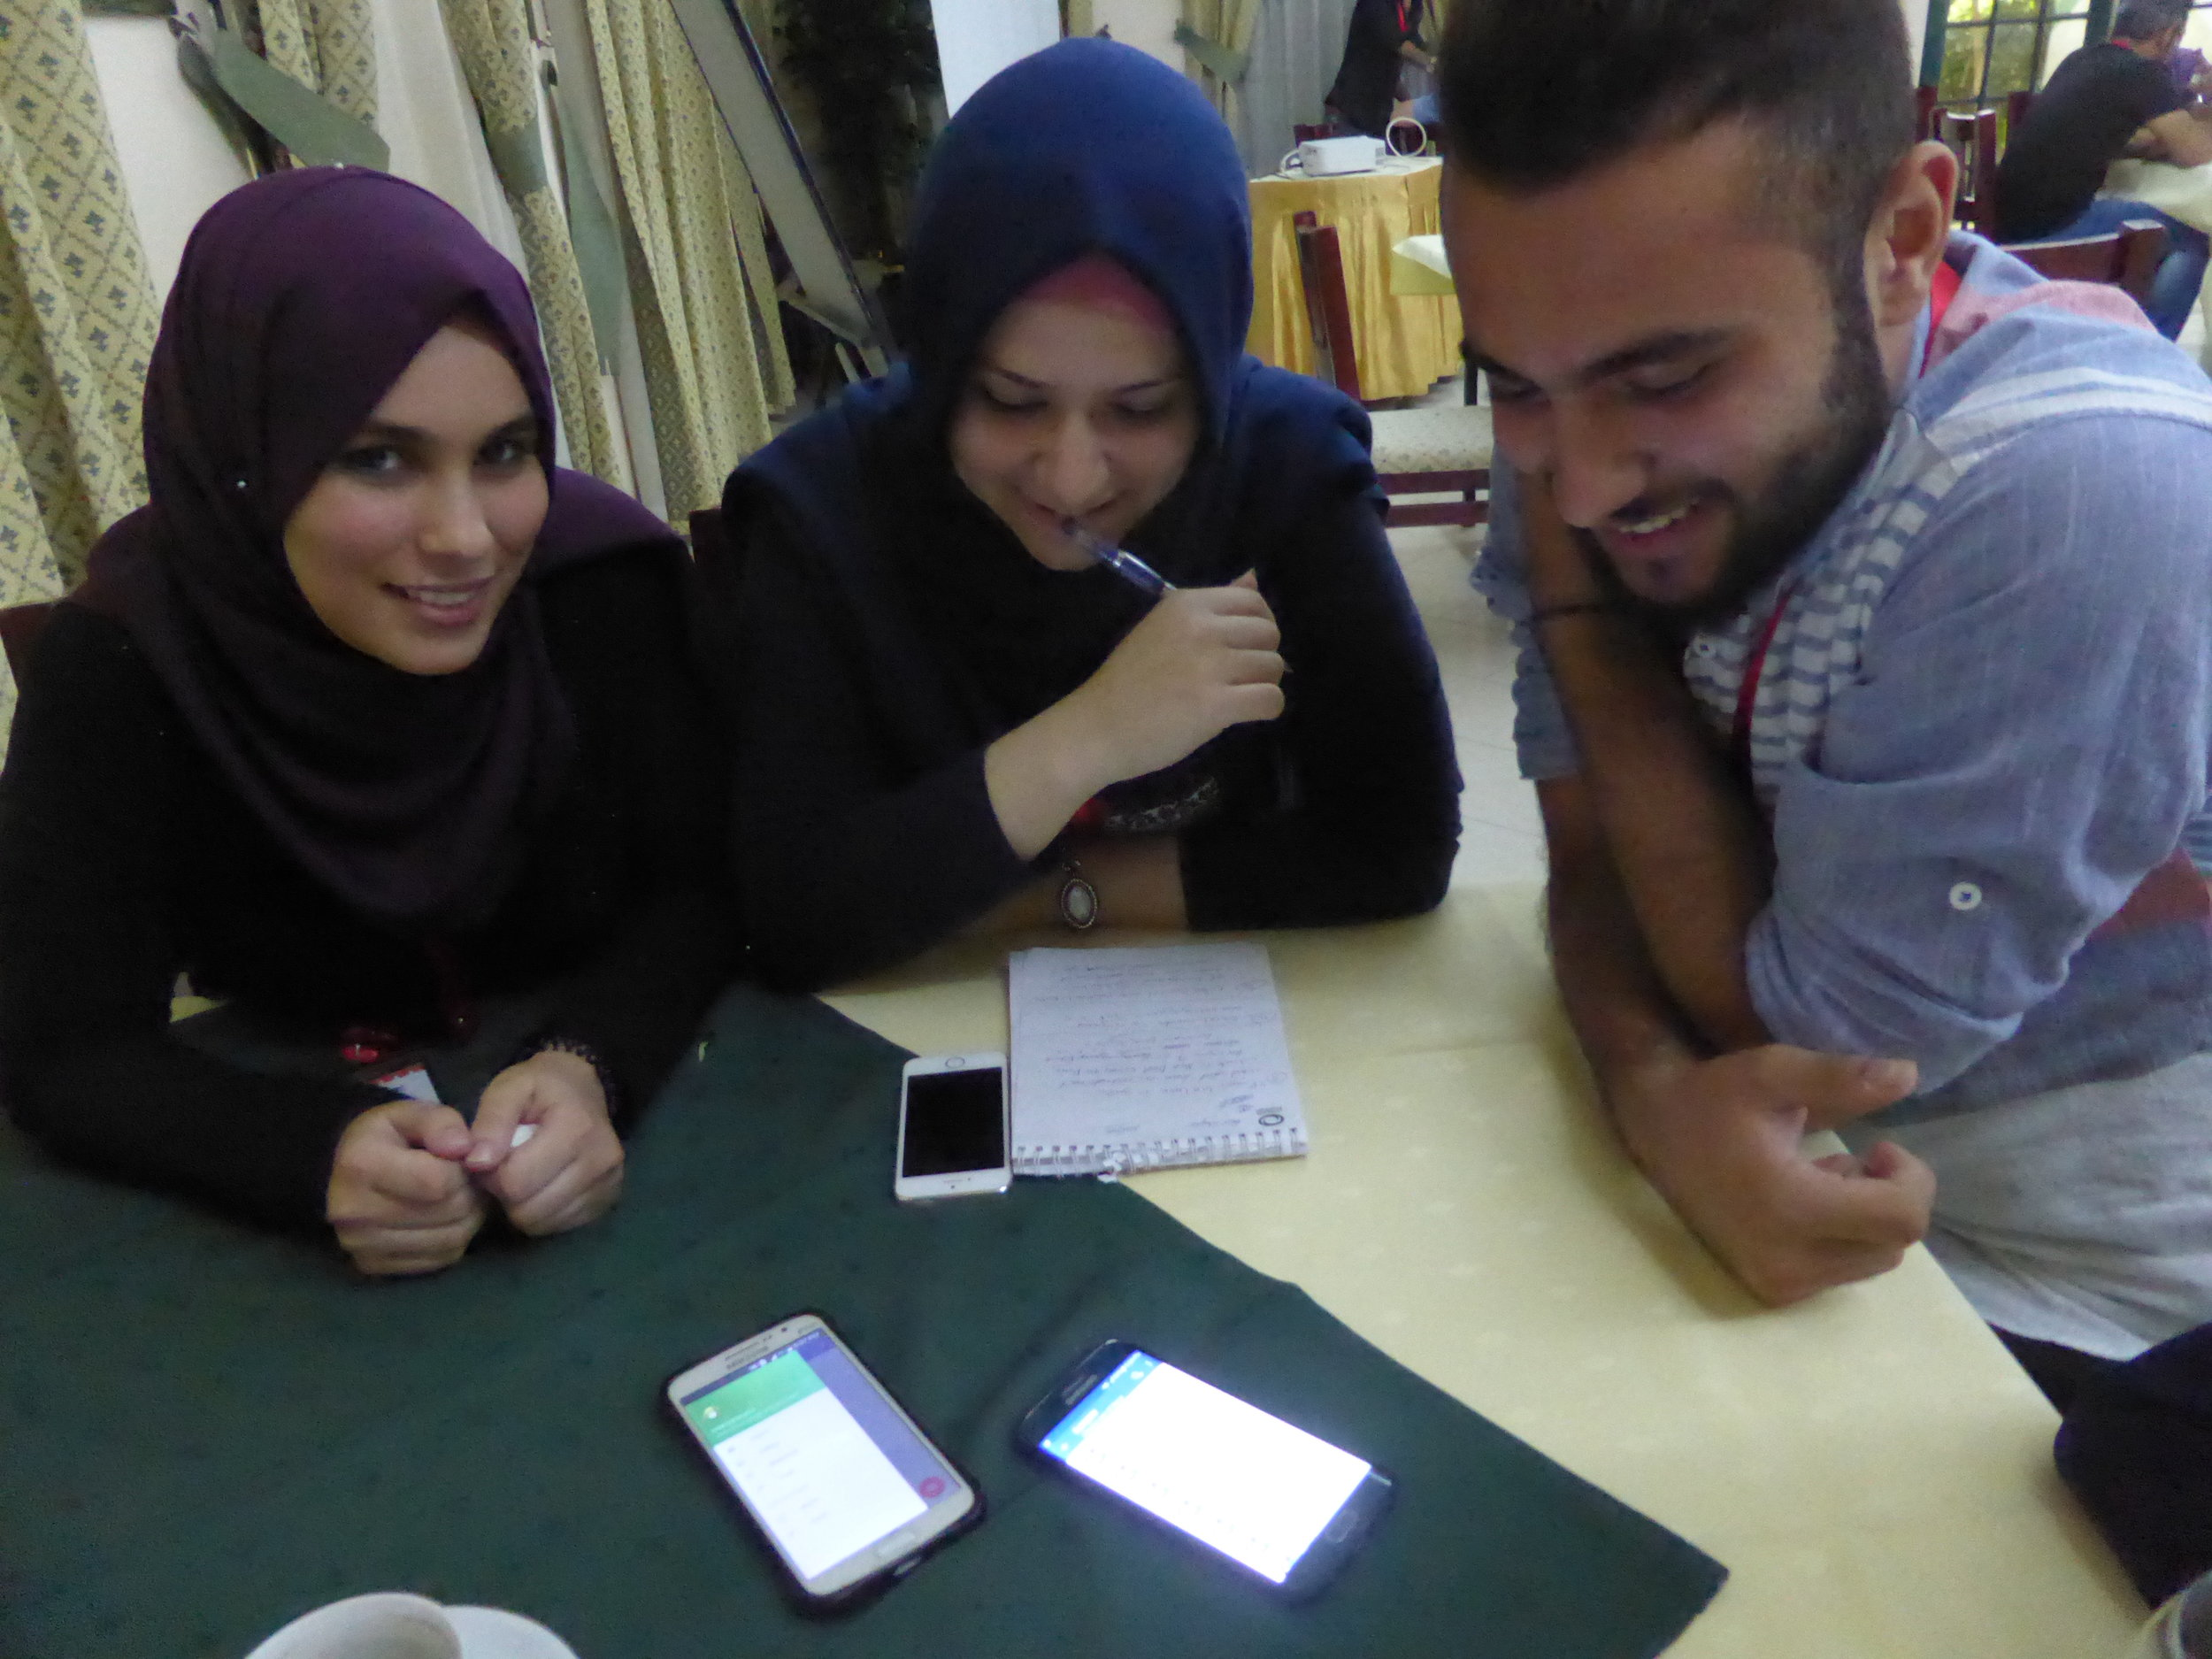 The team behind Legal Chat, showing me their prototype app.